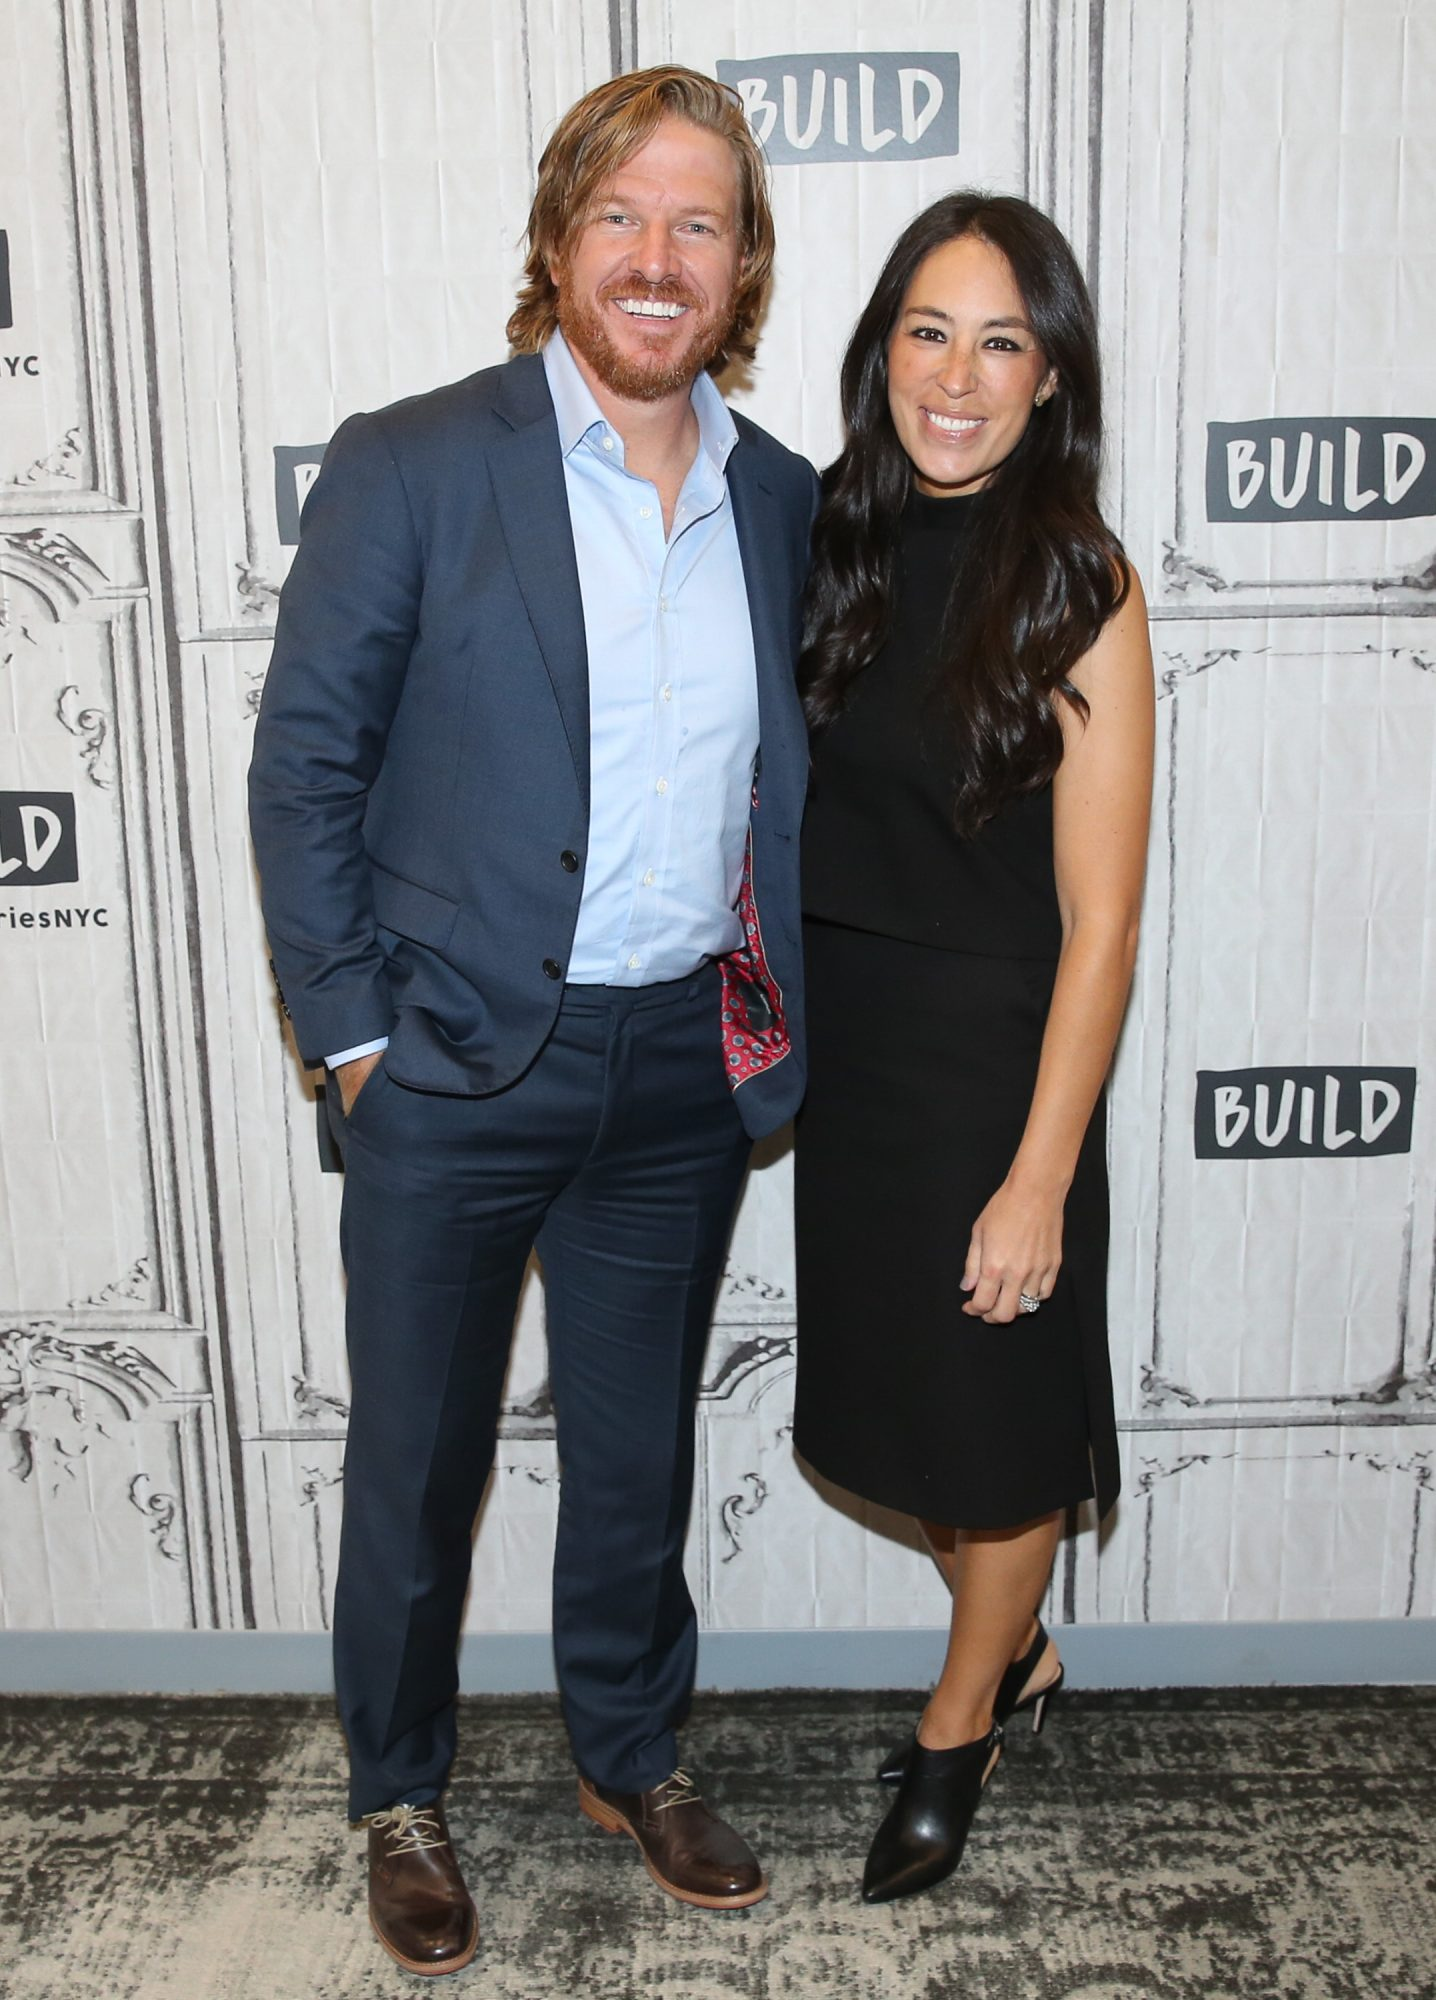 Joanna Gaines Got a Big Surprisefor Her 40th Birthday